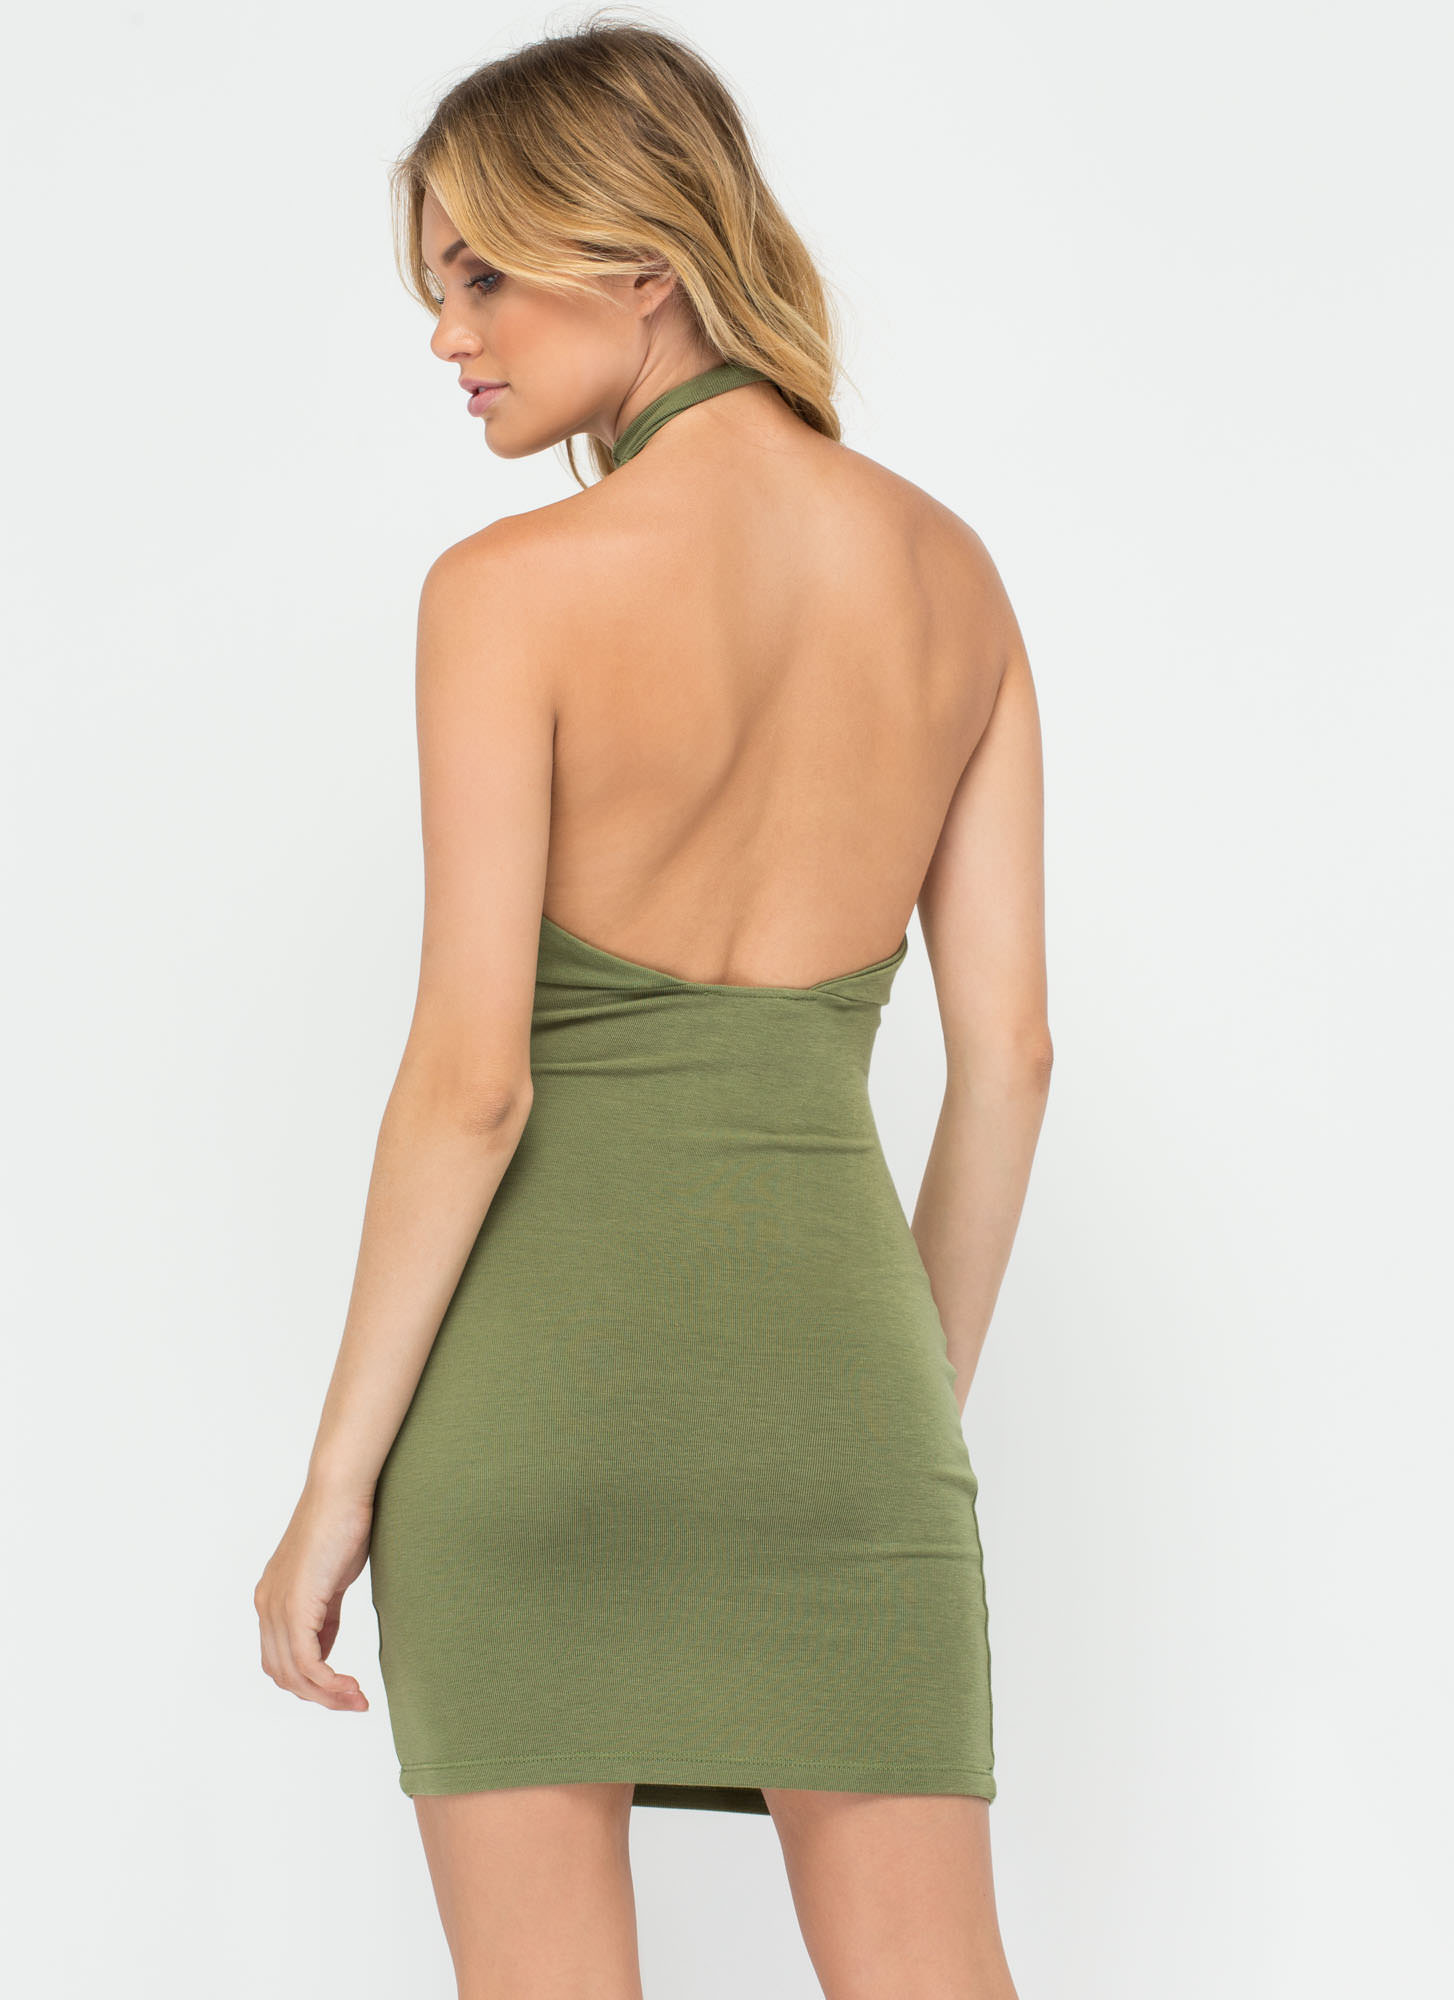 Weave In And Out Strappy Halter Dress OLIVE